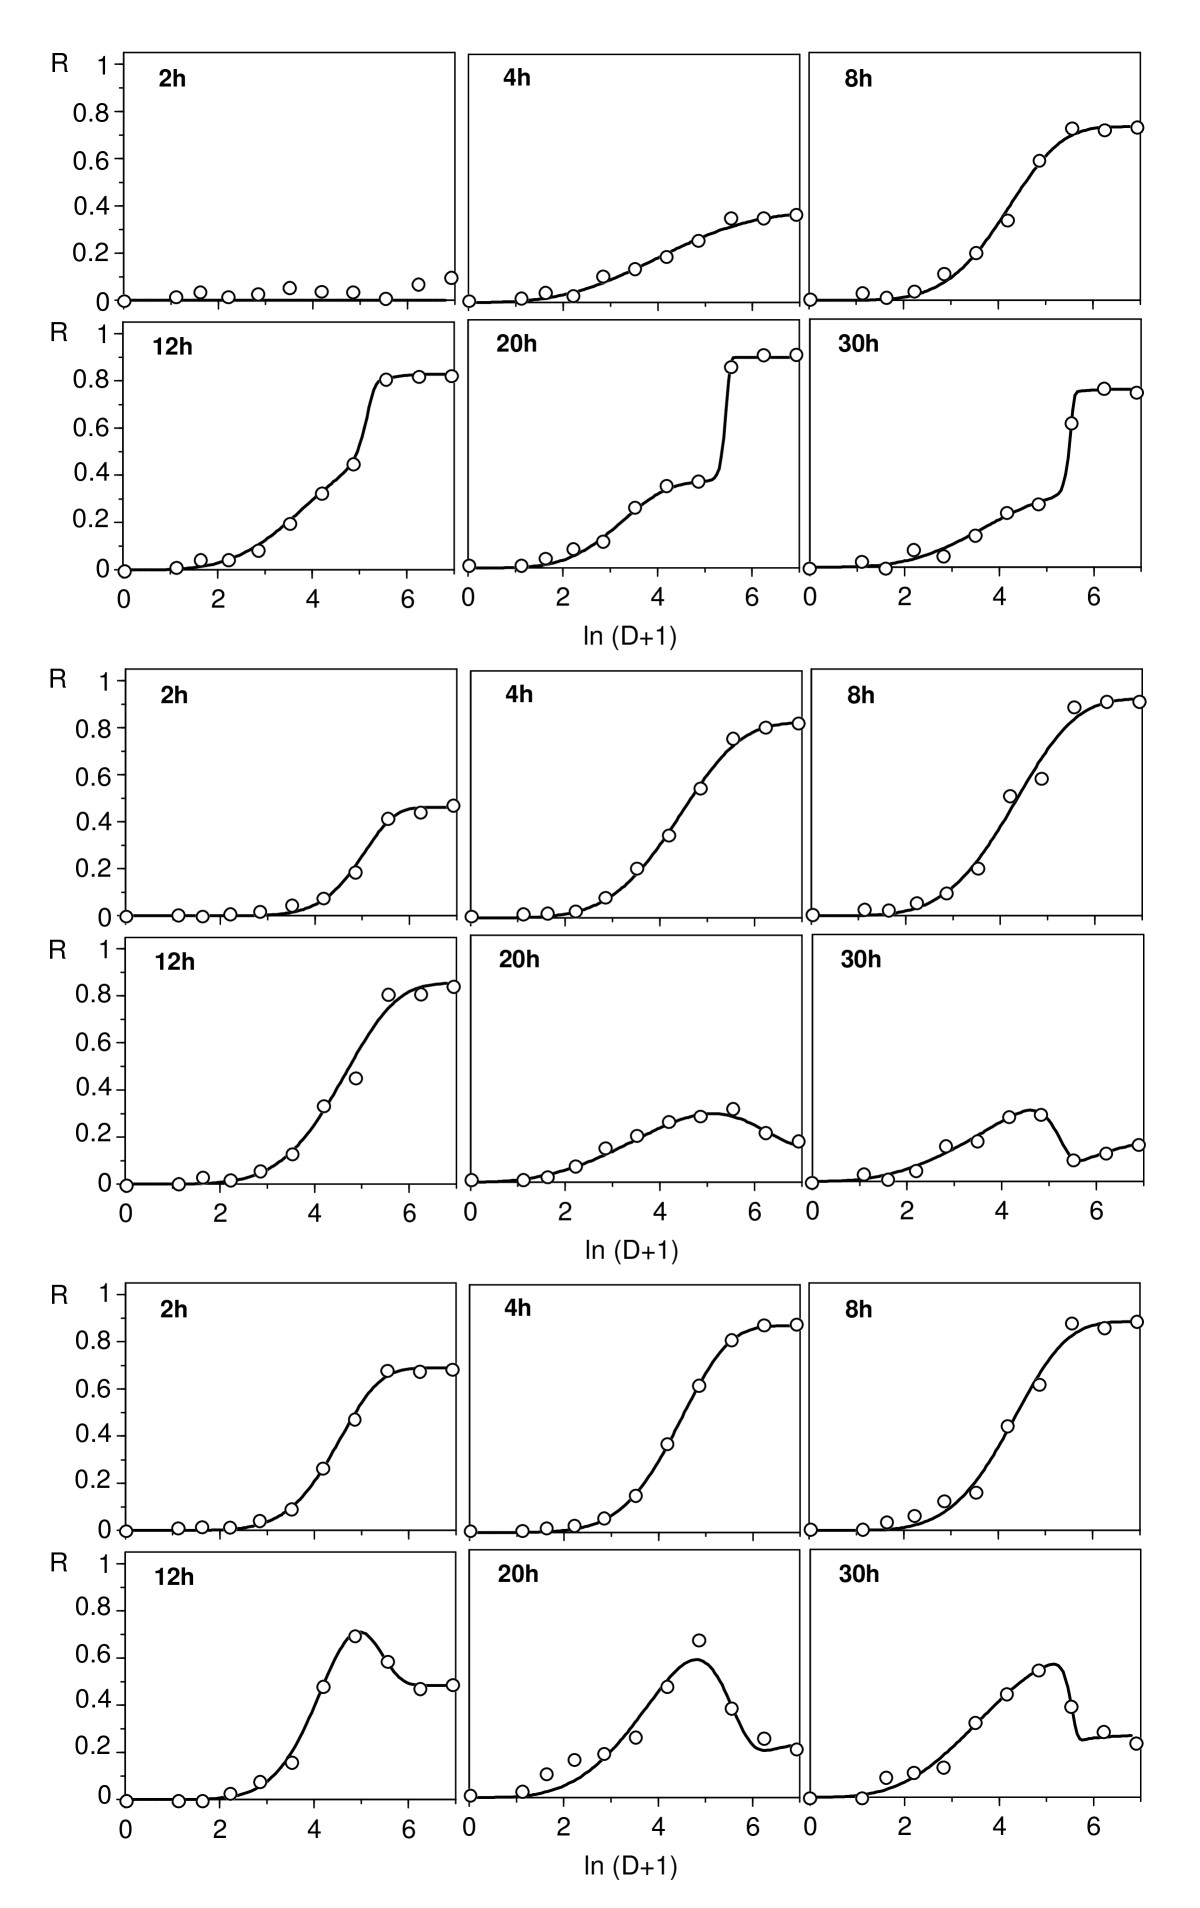 http://static-content.springer.com/image/art%3A10.1186%2F1471-2180-10-220/MediaObjects/12866_2009_Article_1176_Fig4_HTML.jpg